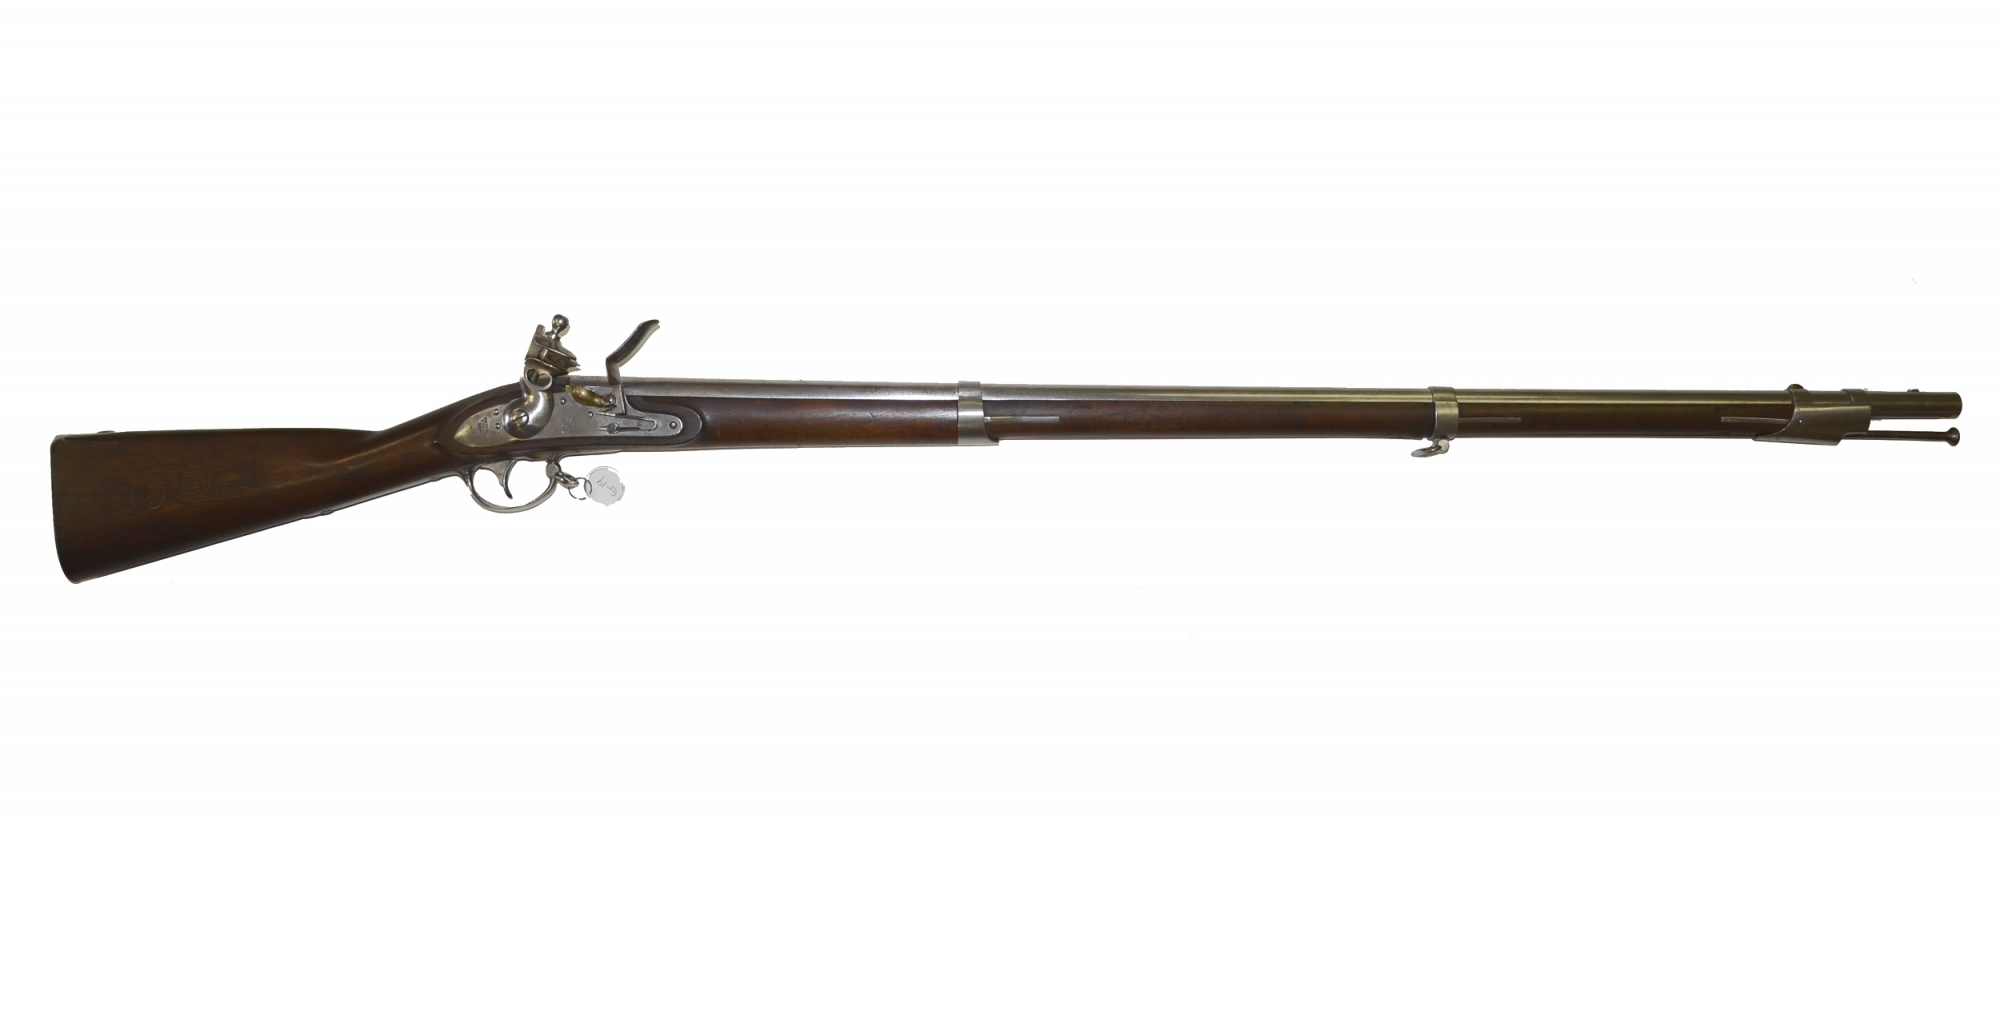 M1816 SPRINGFIELD FLINTLOCK RECONVERSION MUSKET DATED 1838